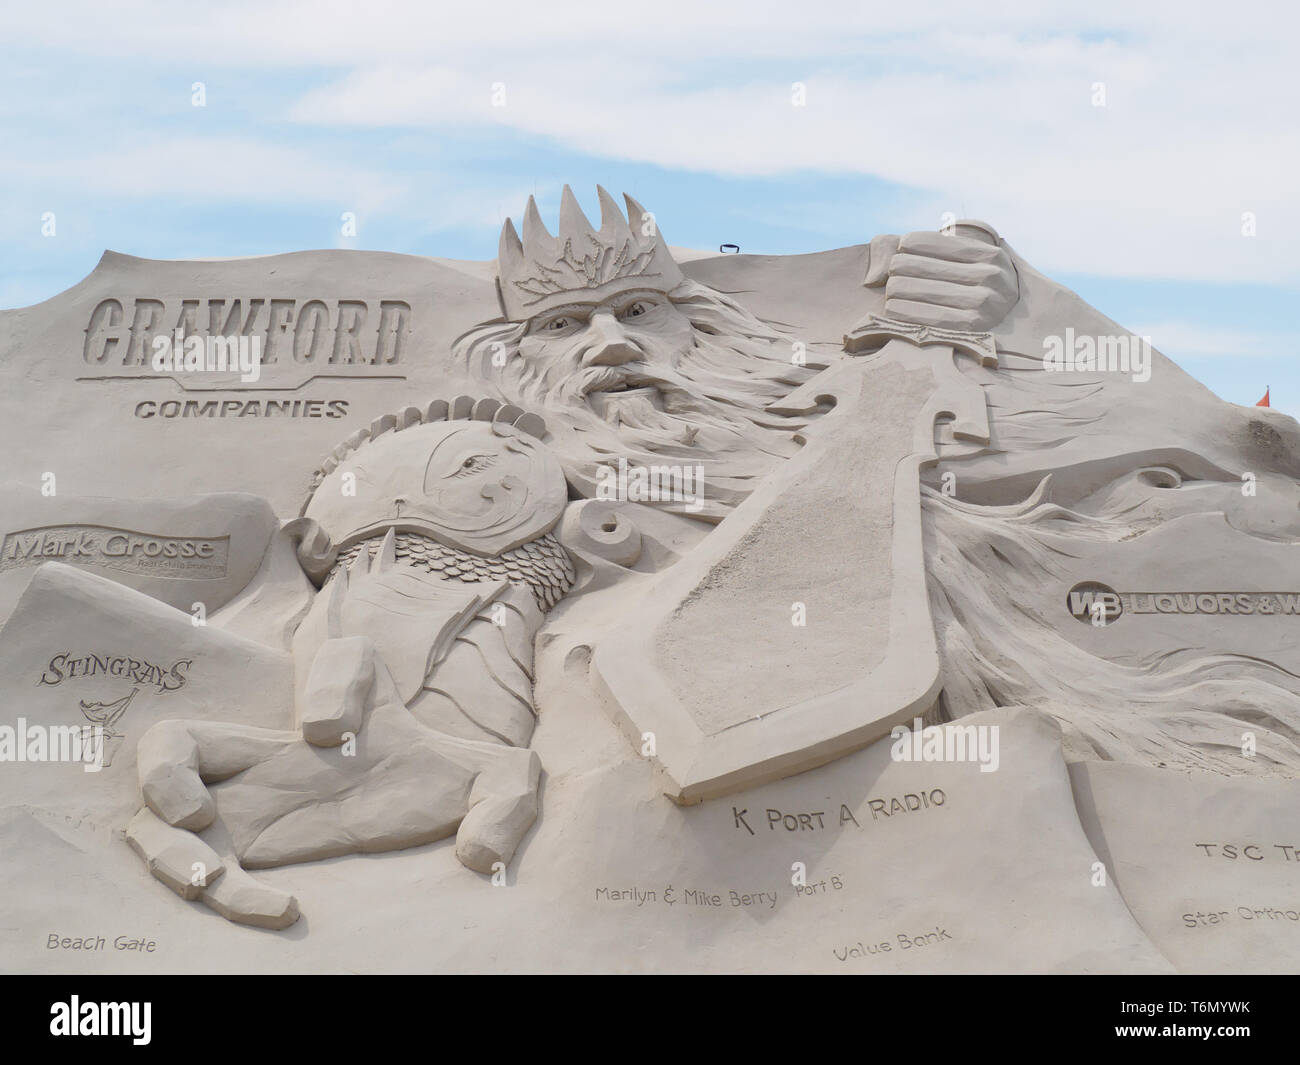 A sword wielding figure dominates one of the large sand sculptures on display at the 2019 Texas Sandfest in Port Aransas, Texas USA. - Stock Image